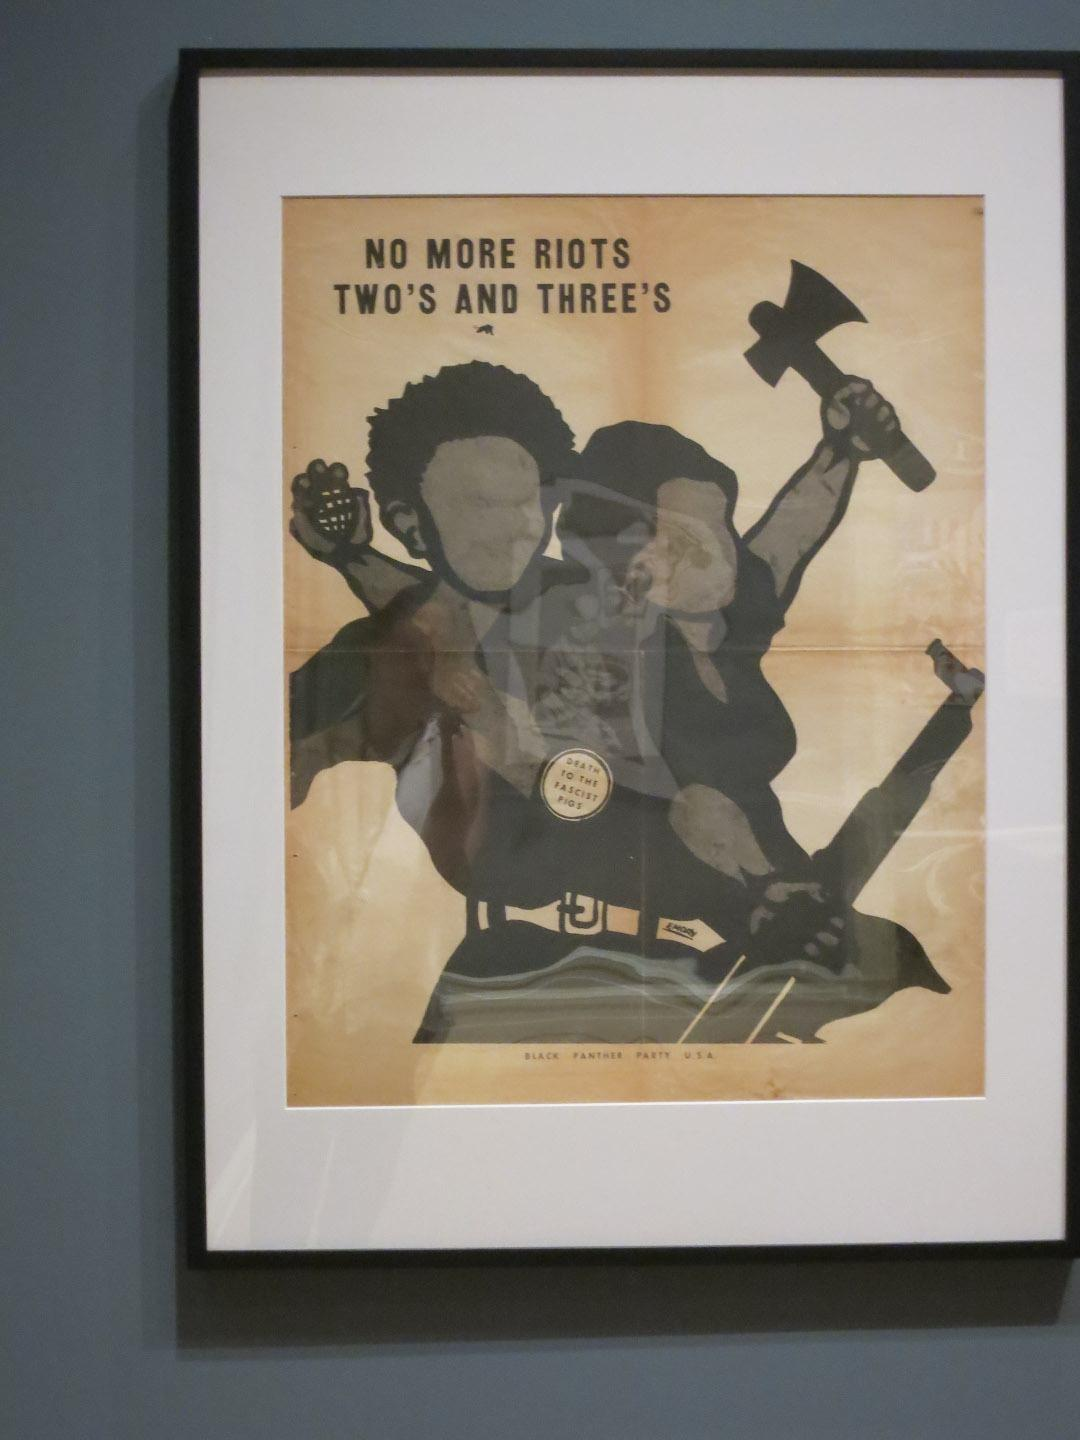 This is the object I led my tour on:  No More Riots Two's and Three's, Emory Douglas (ca. 1970), Lithograph on paper